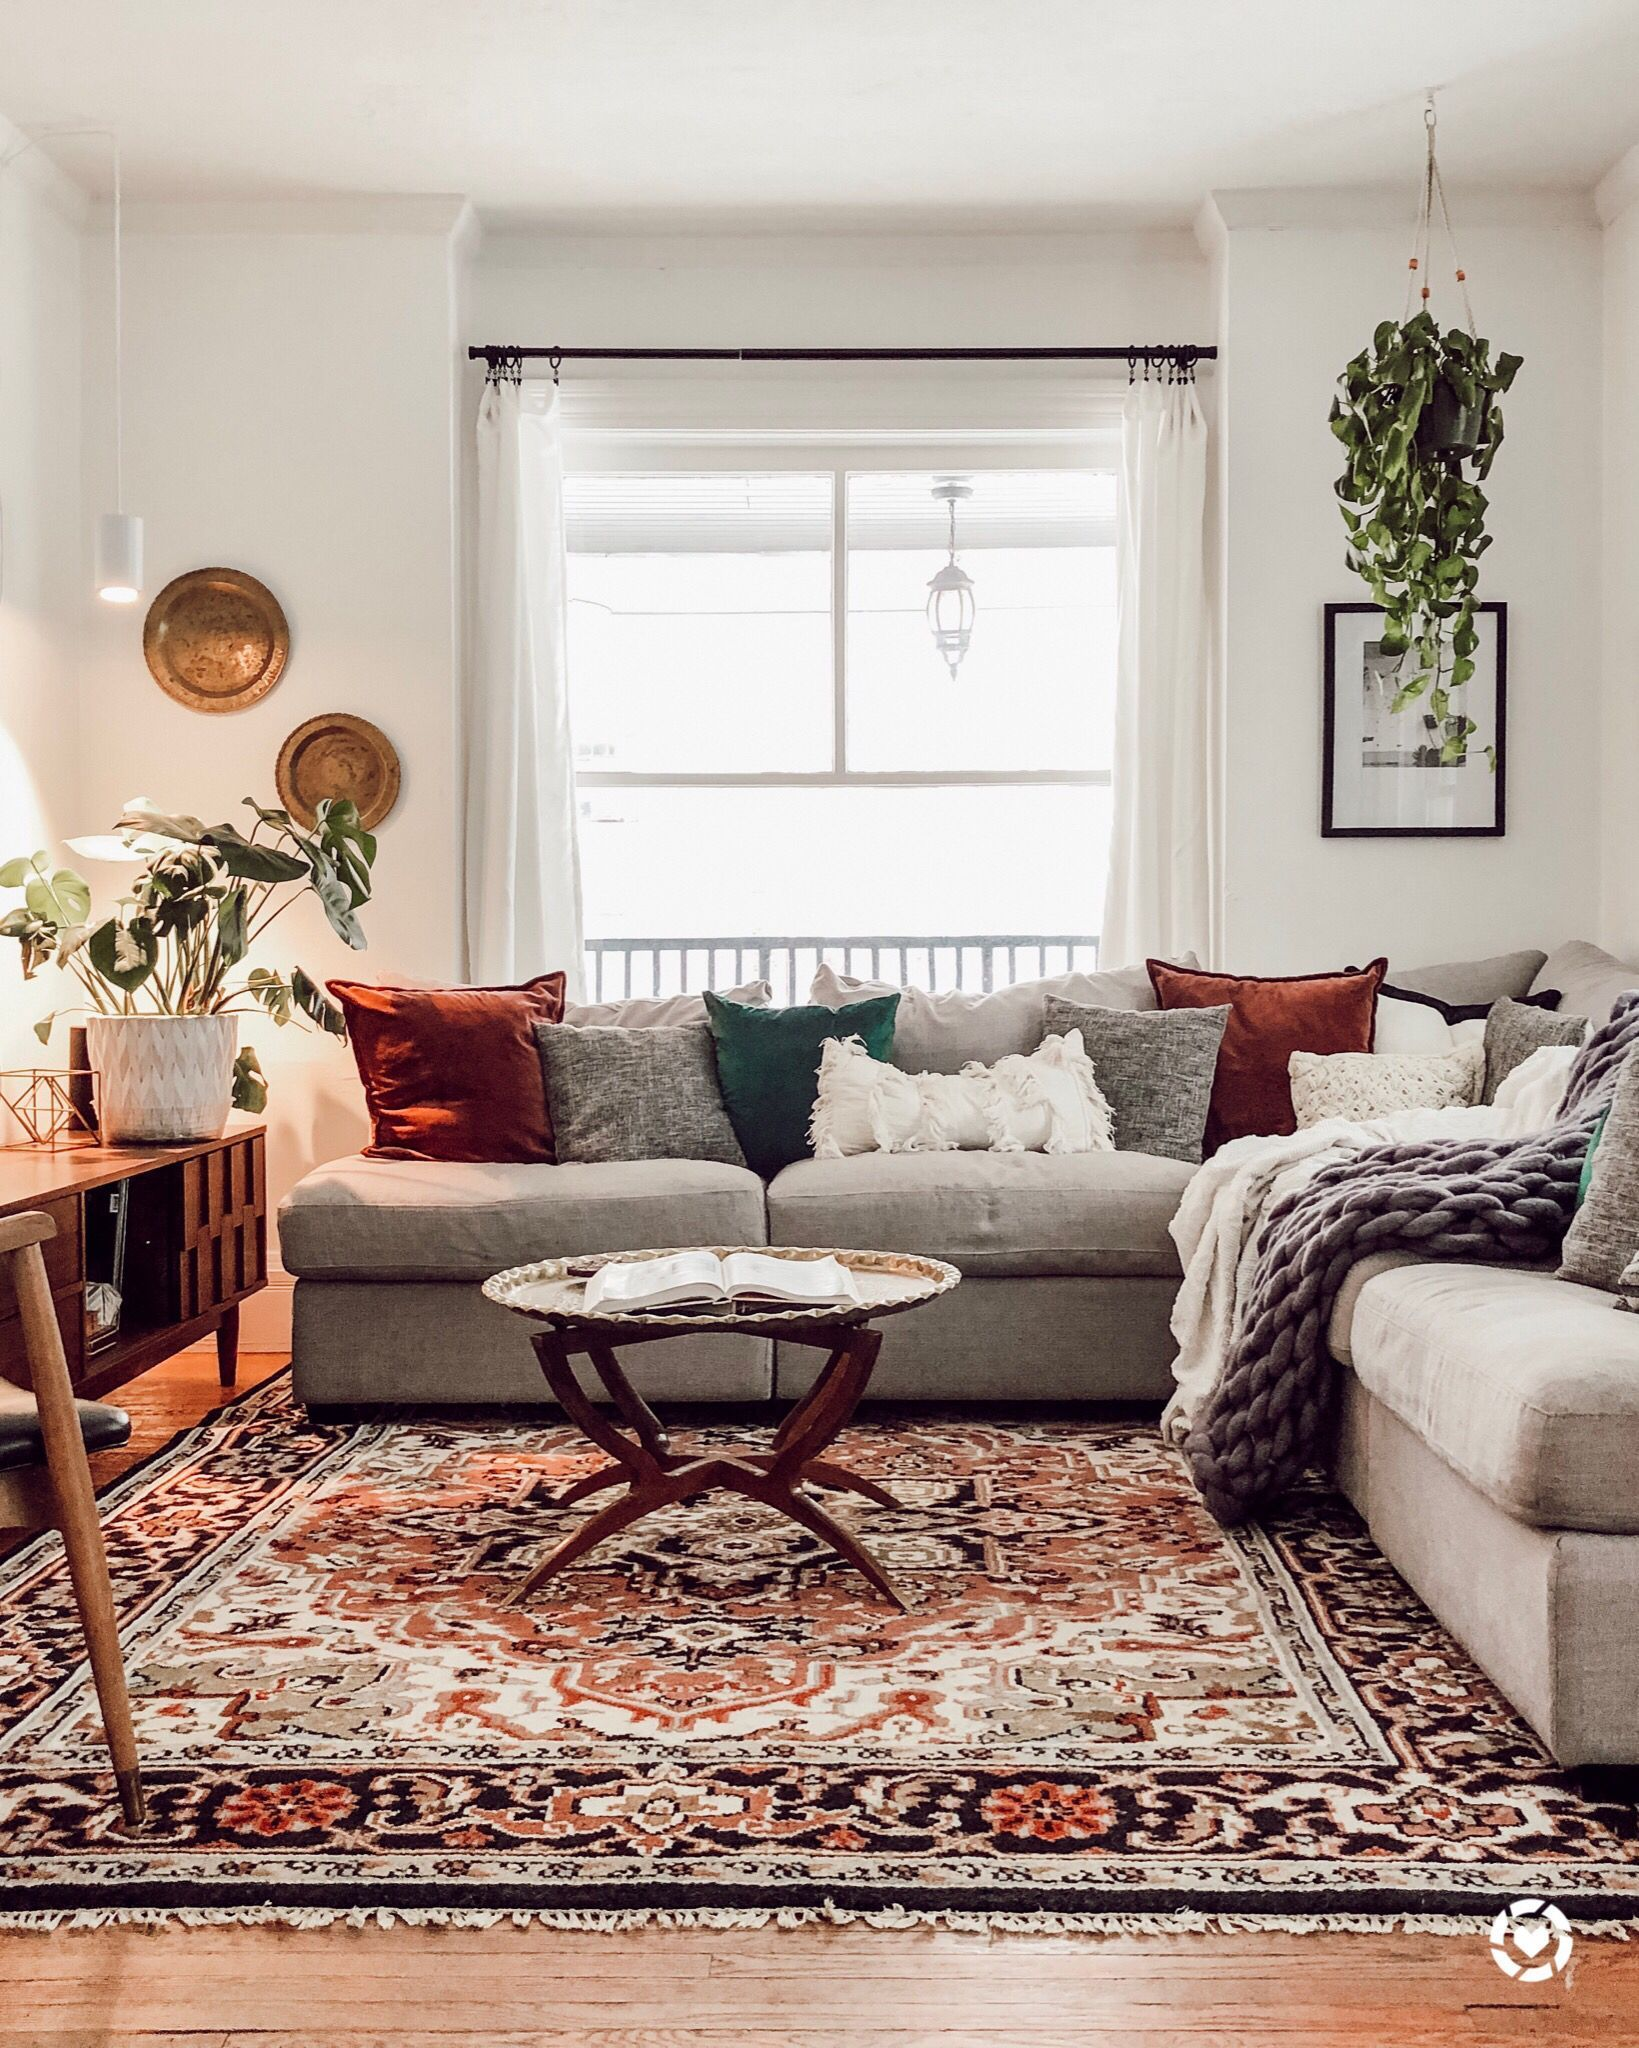 73 Eclectic Living Room Decor Ideas: Cozy Eclectic Living Room 773704410969510324